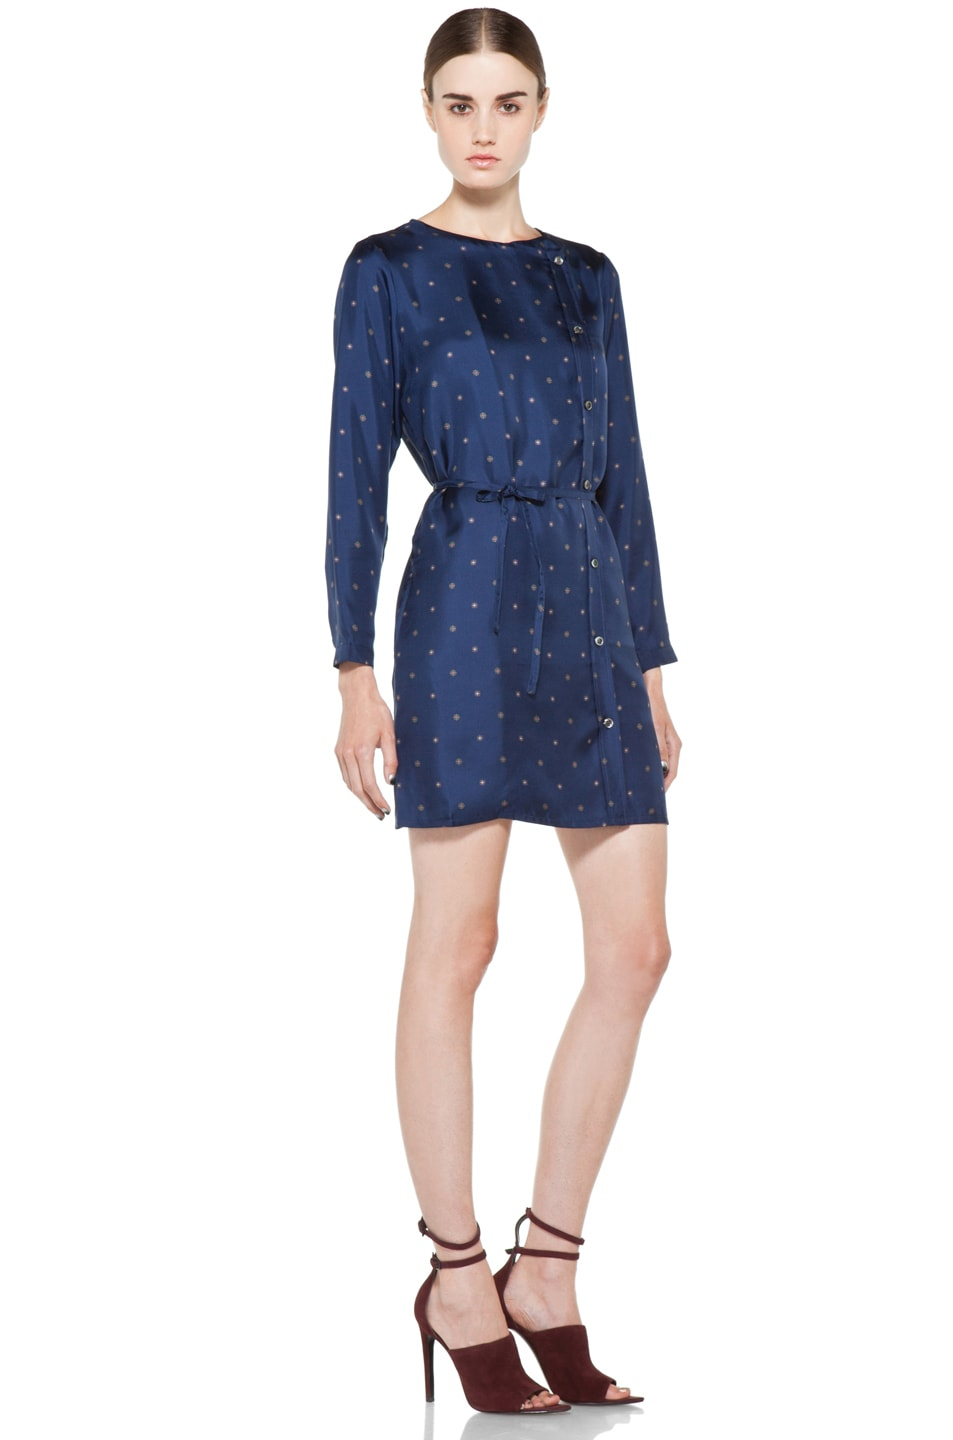 Image 3 of A.P.C. Twill de Soire Imprime Dress in Marine